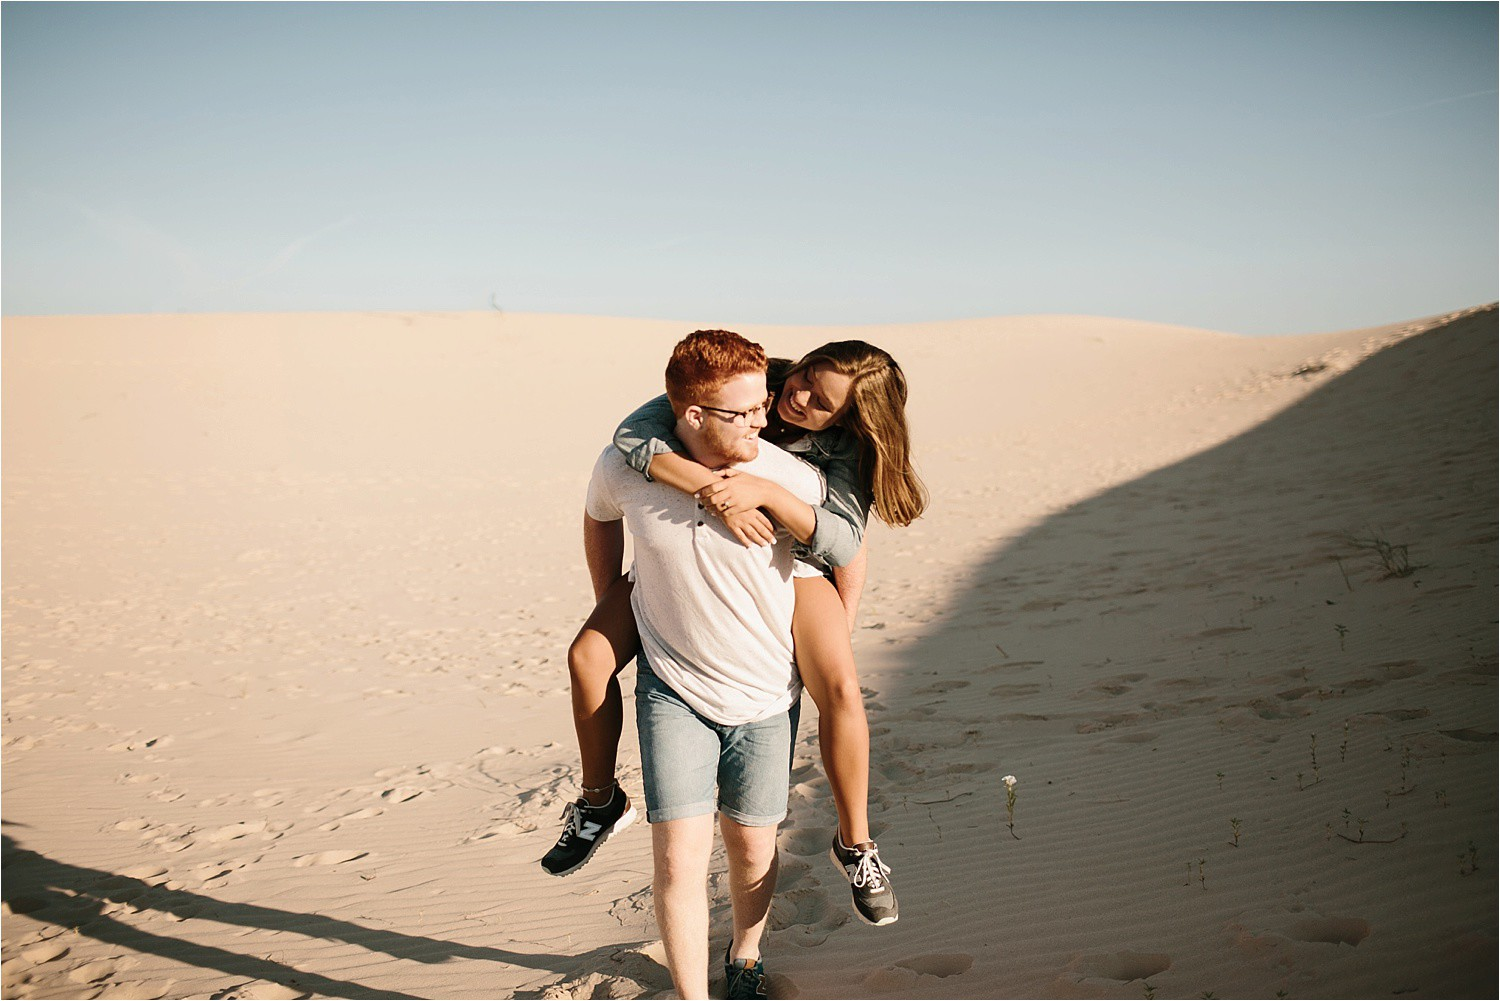 Lauren + Jacob __ a monahans sand dunes engagement session at sunrise by North Texas Wedding Photographer, Rachel Meagan Photography __ 38